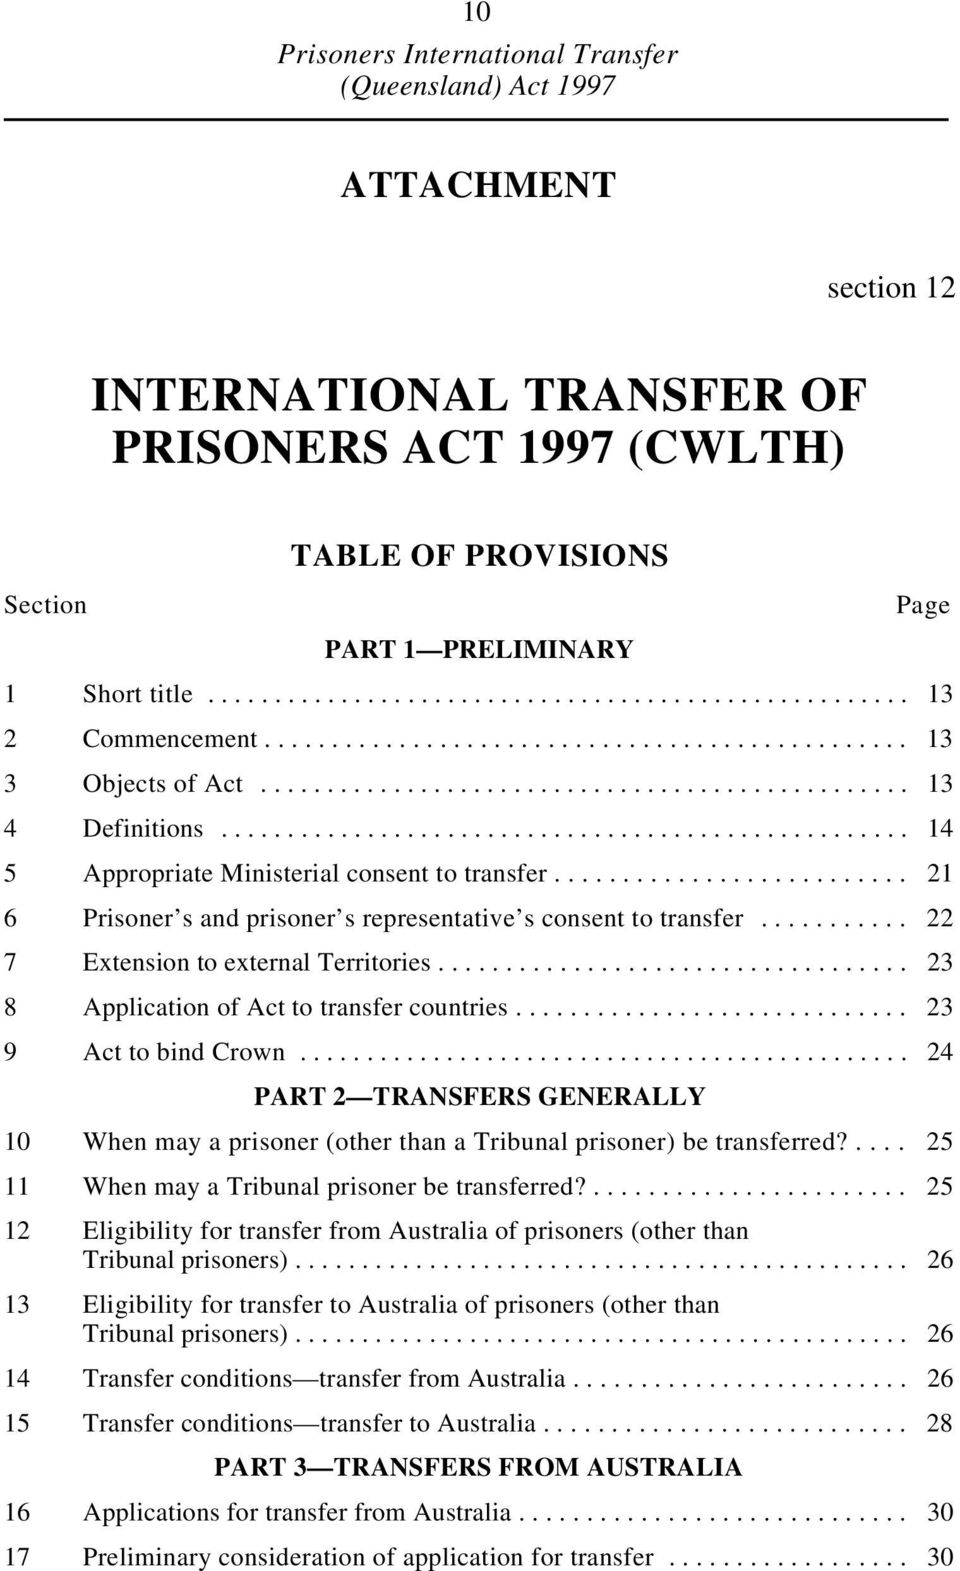 ......................... 21 6 Prisoner s and prisoner s representative s consent to transfer........... 22 7 Extension to external Territories................................... 23 8 Application of Act to transfer countries.